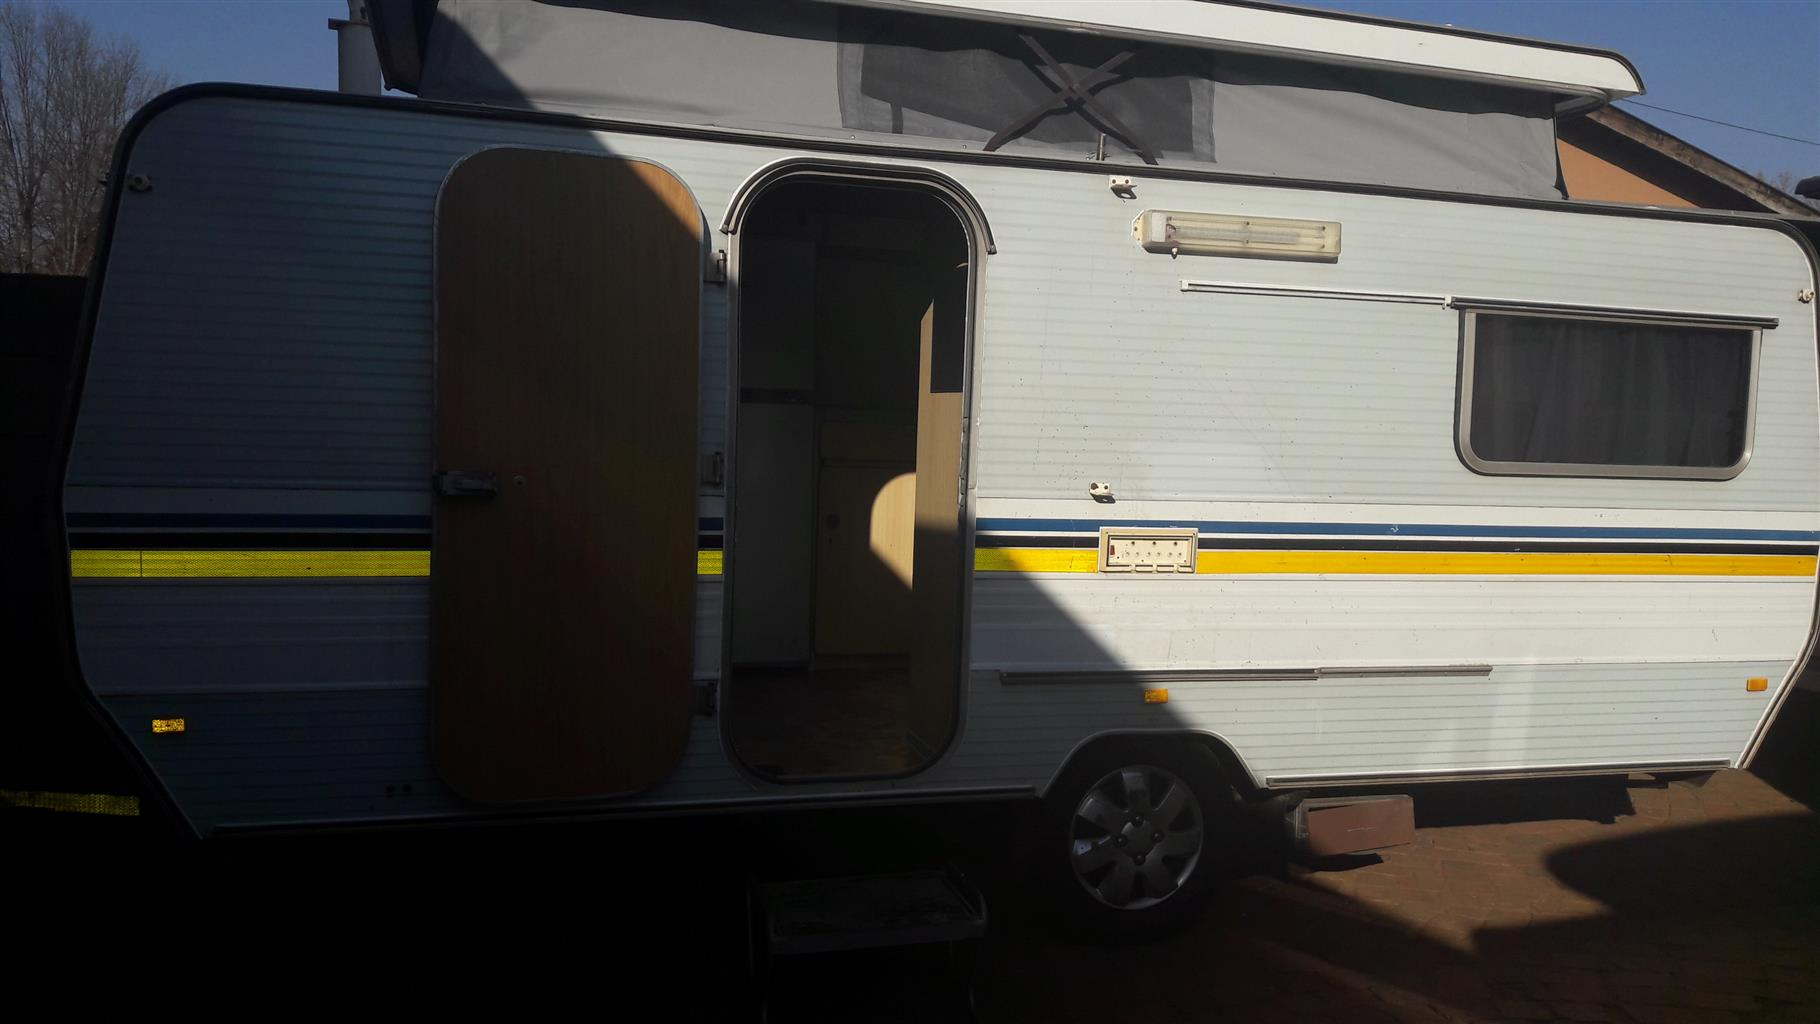 sprite sport 6 bed with full tent and big fridge and freezer